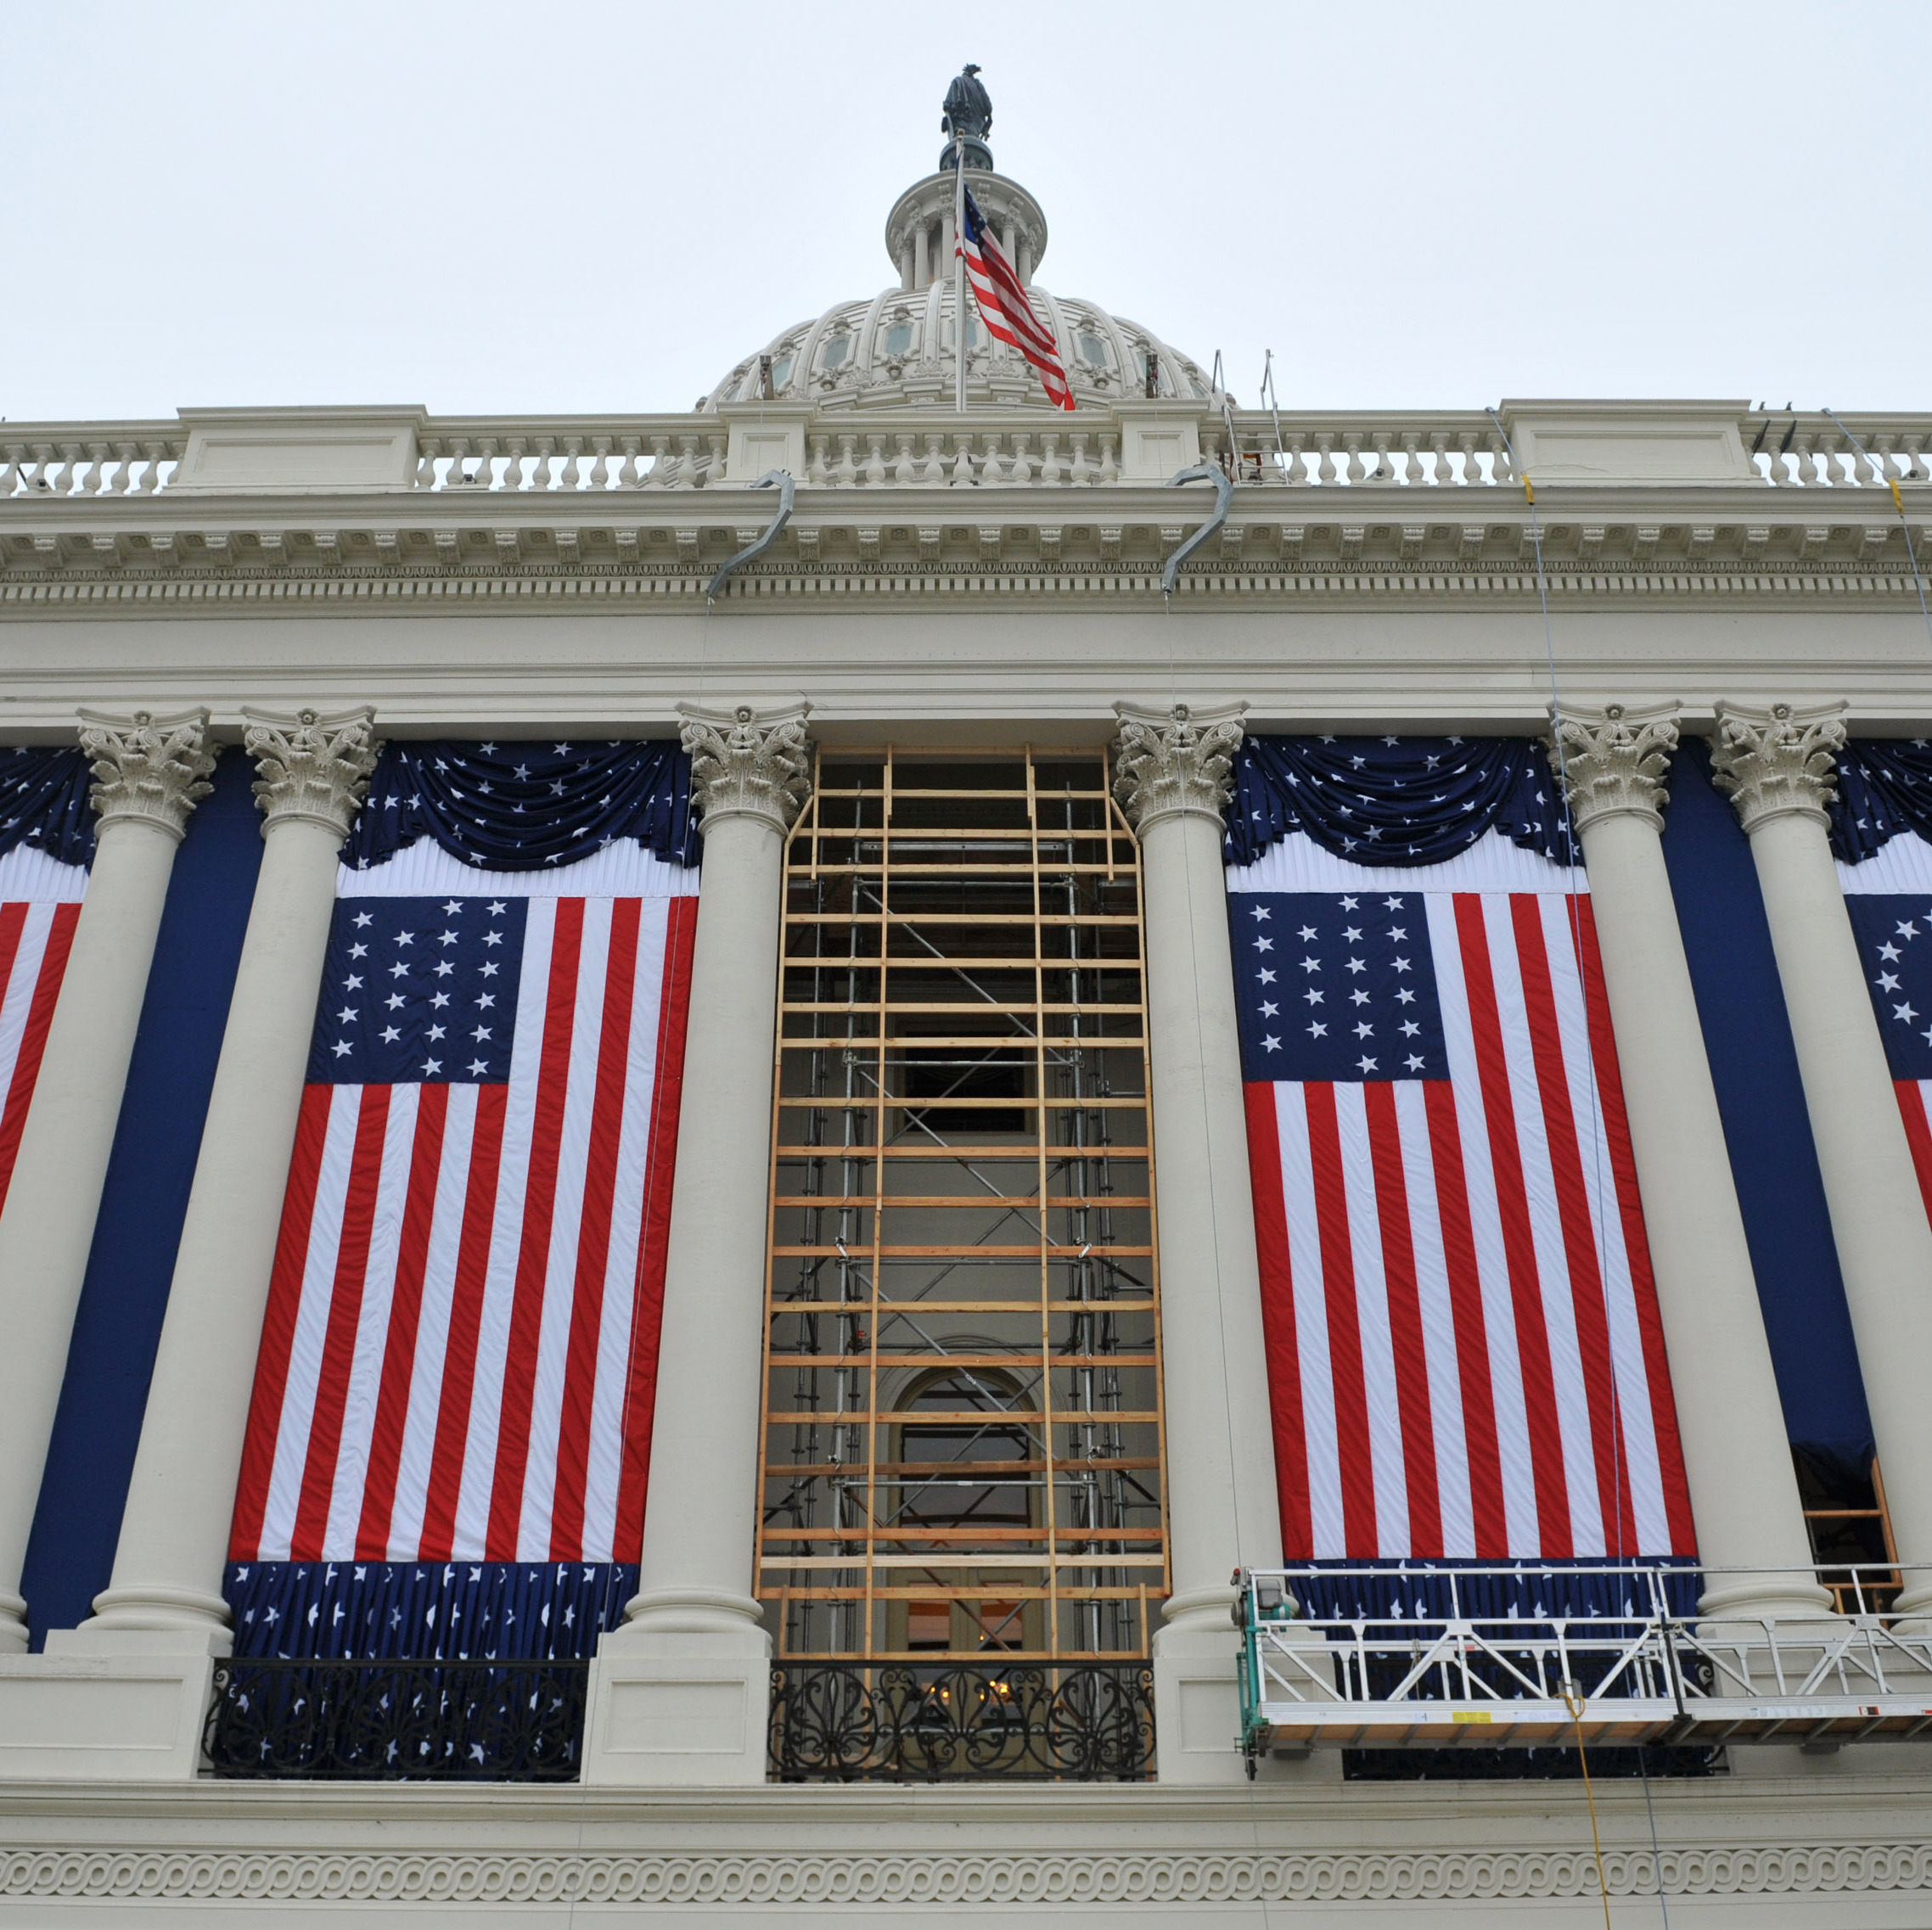 The West Front of the Capitol Building is being prepared for Mondays inauguration.